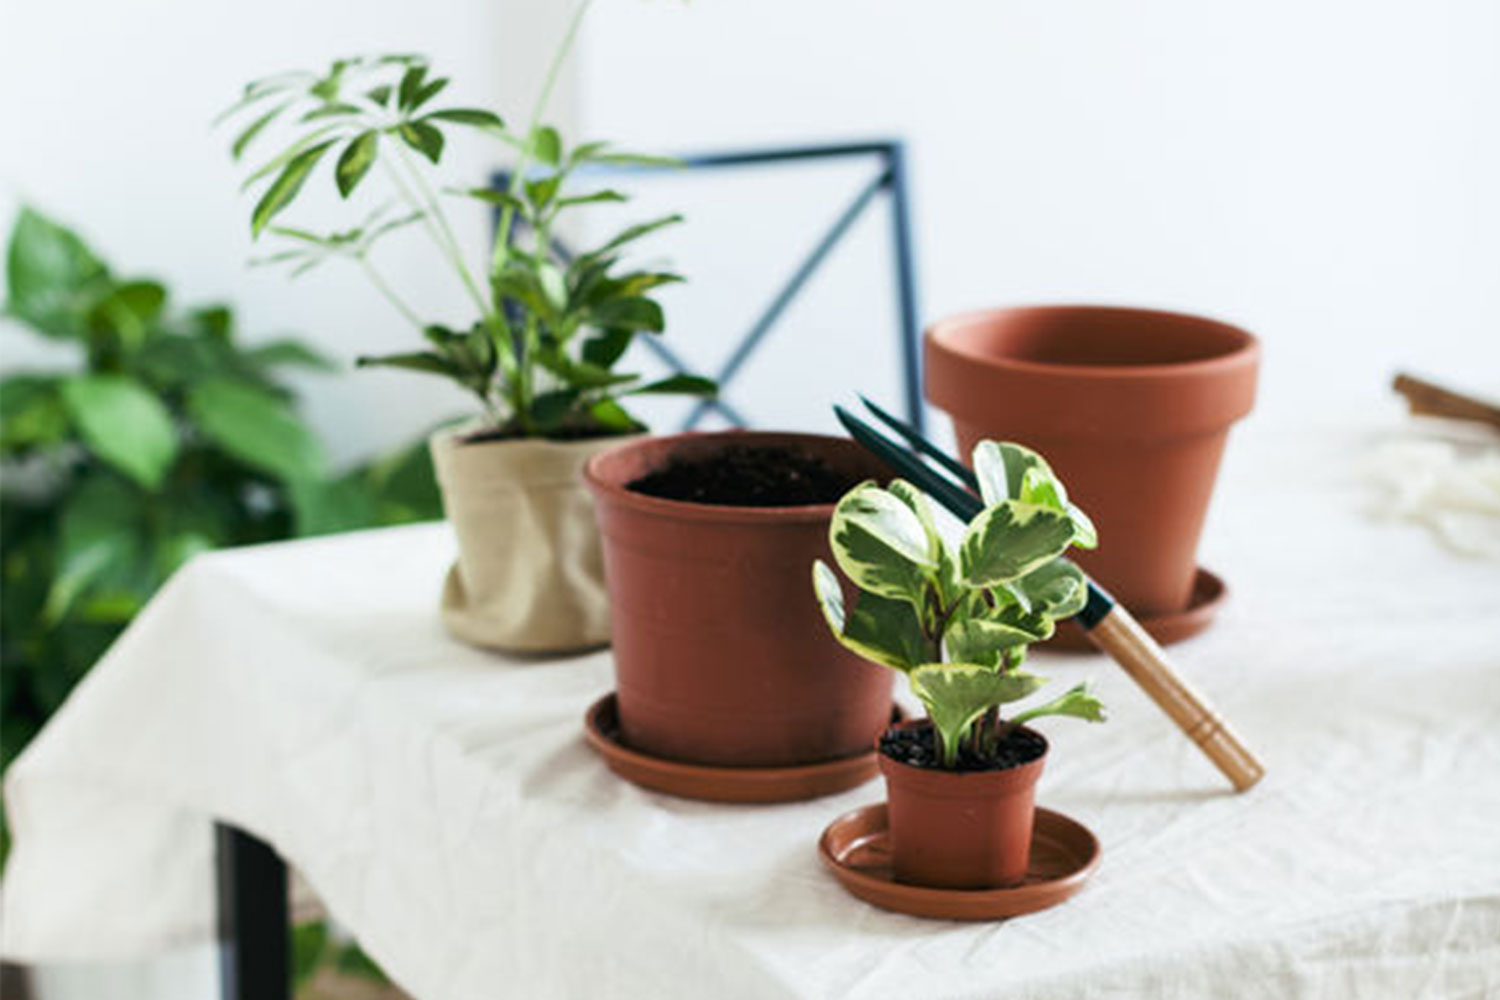 pots and plants on a table with white linen